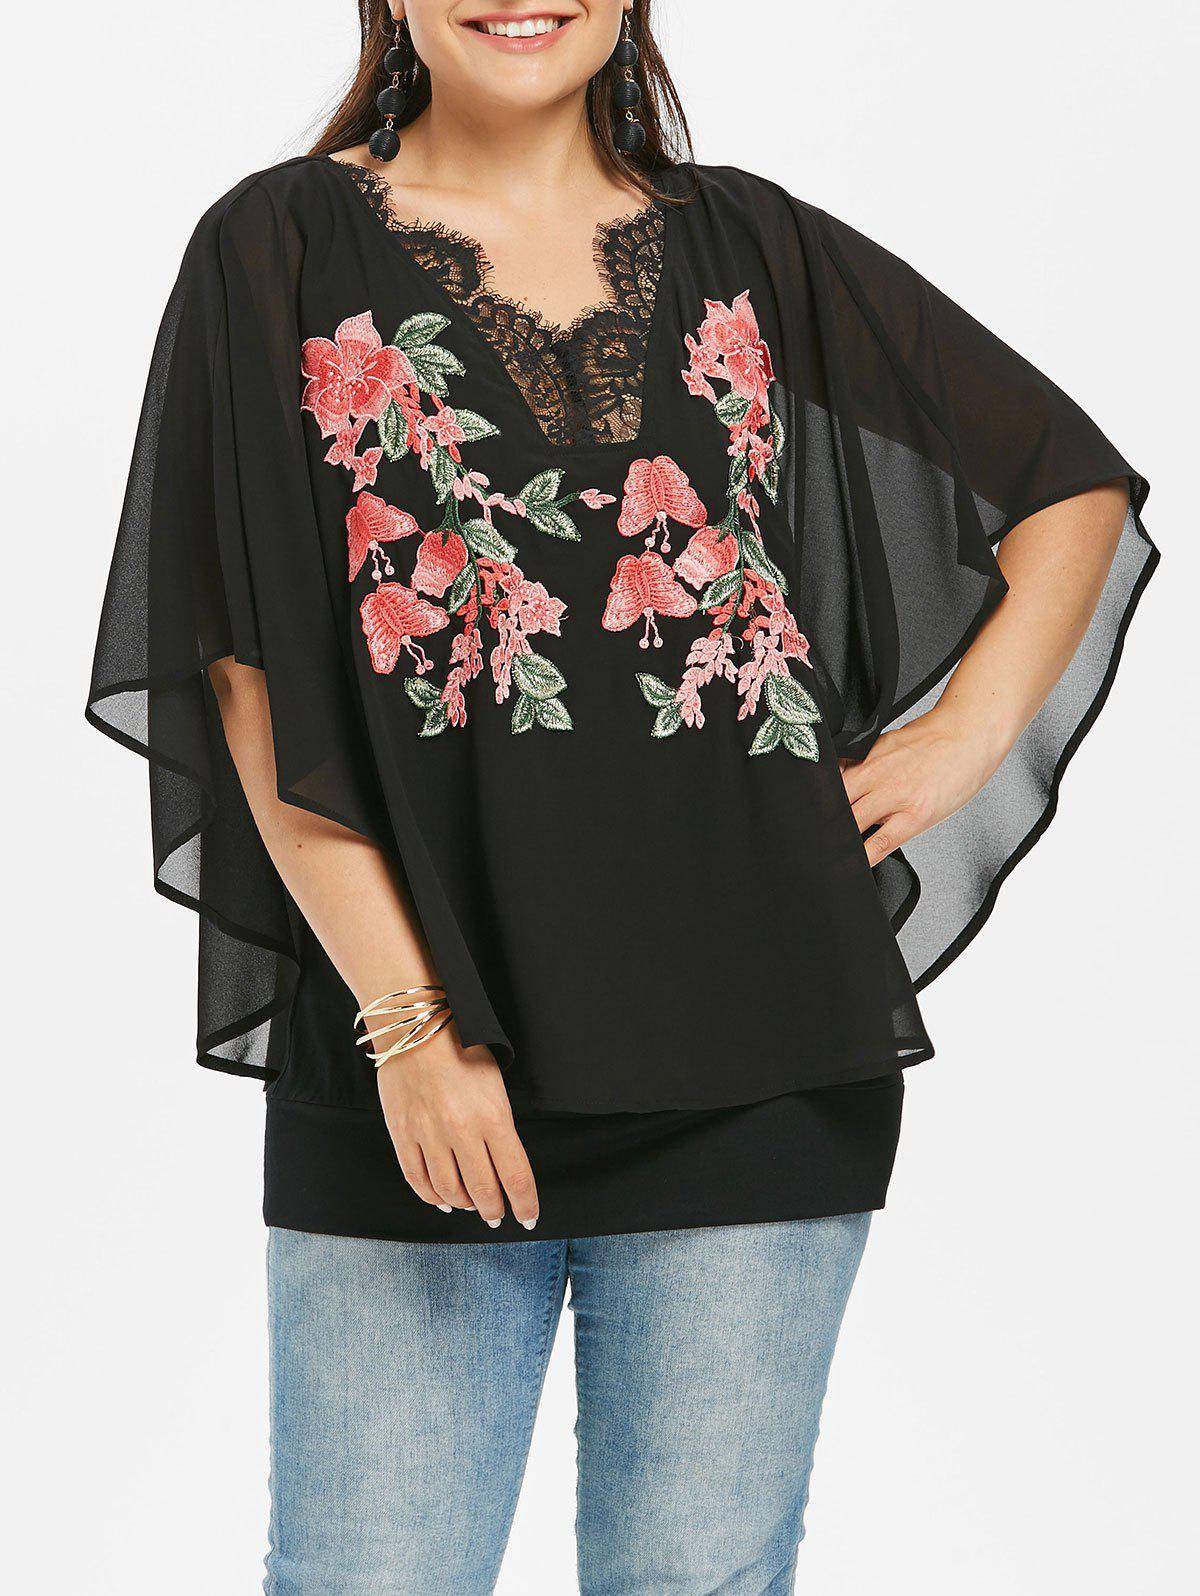 2019 Rosegal Plus Size Embroidery V Neck Overlay Blouse Rosegal Com